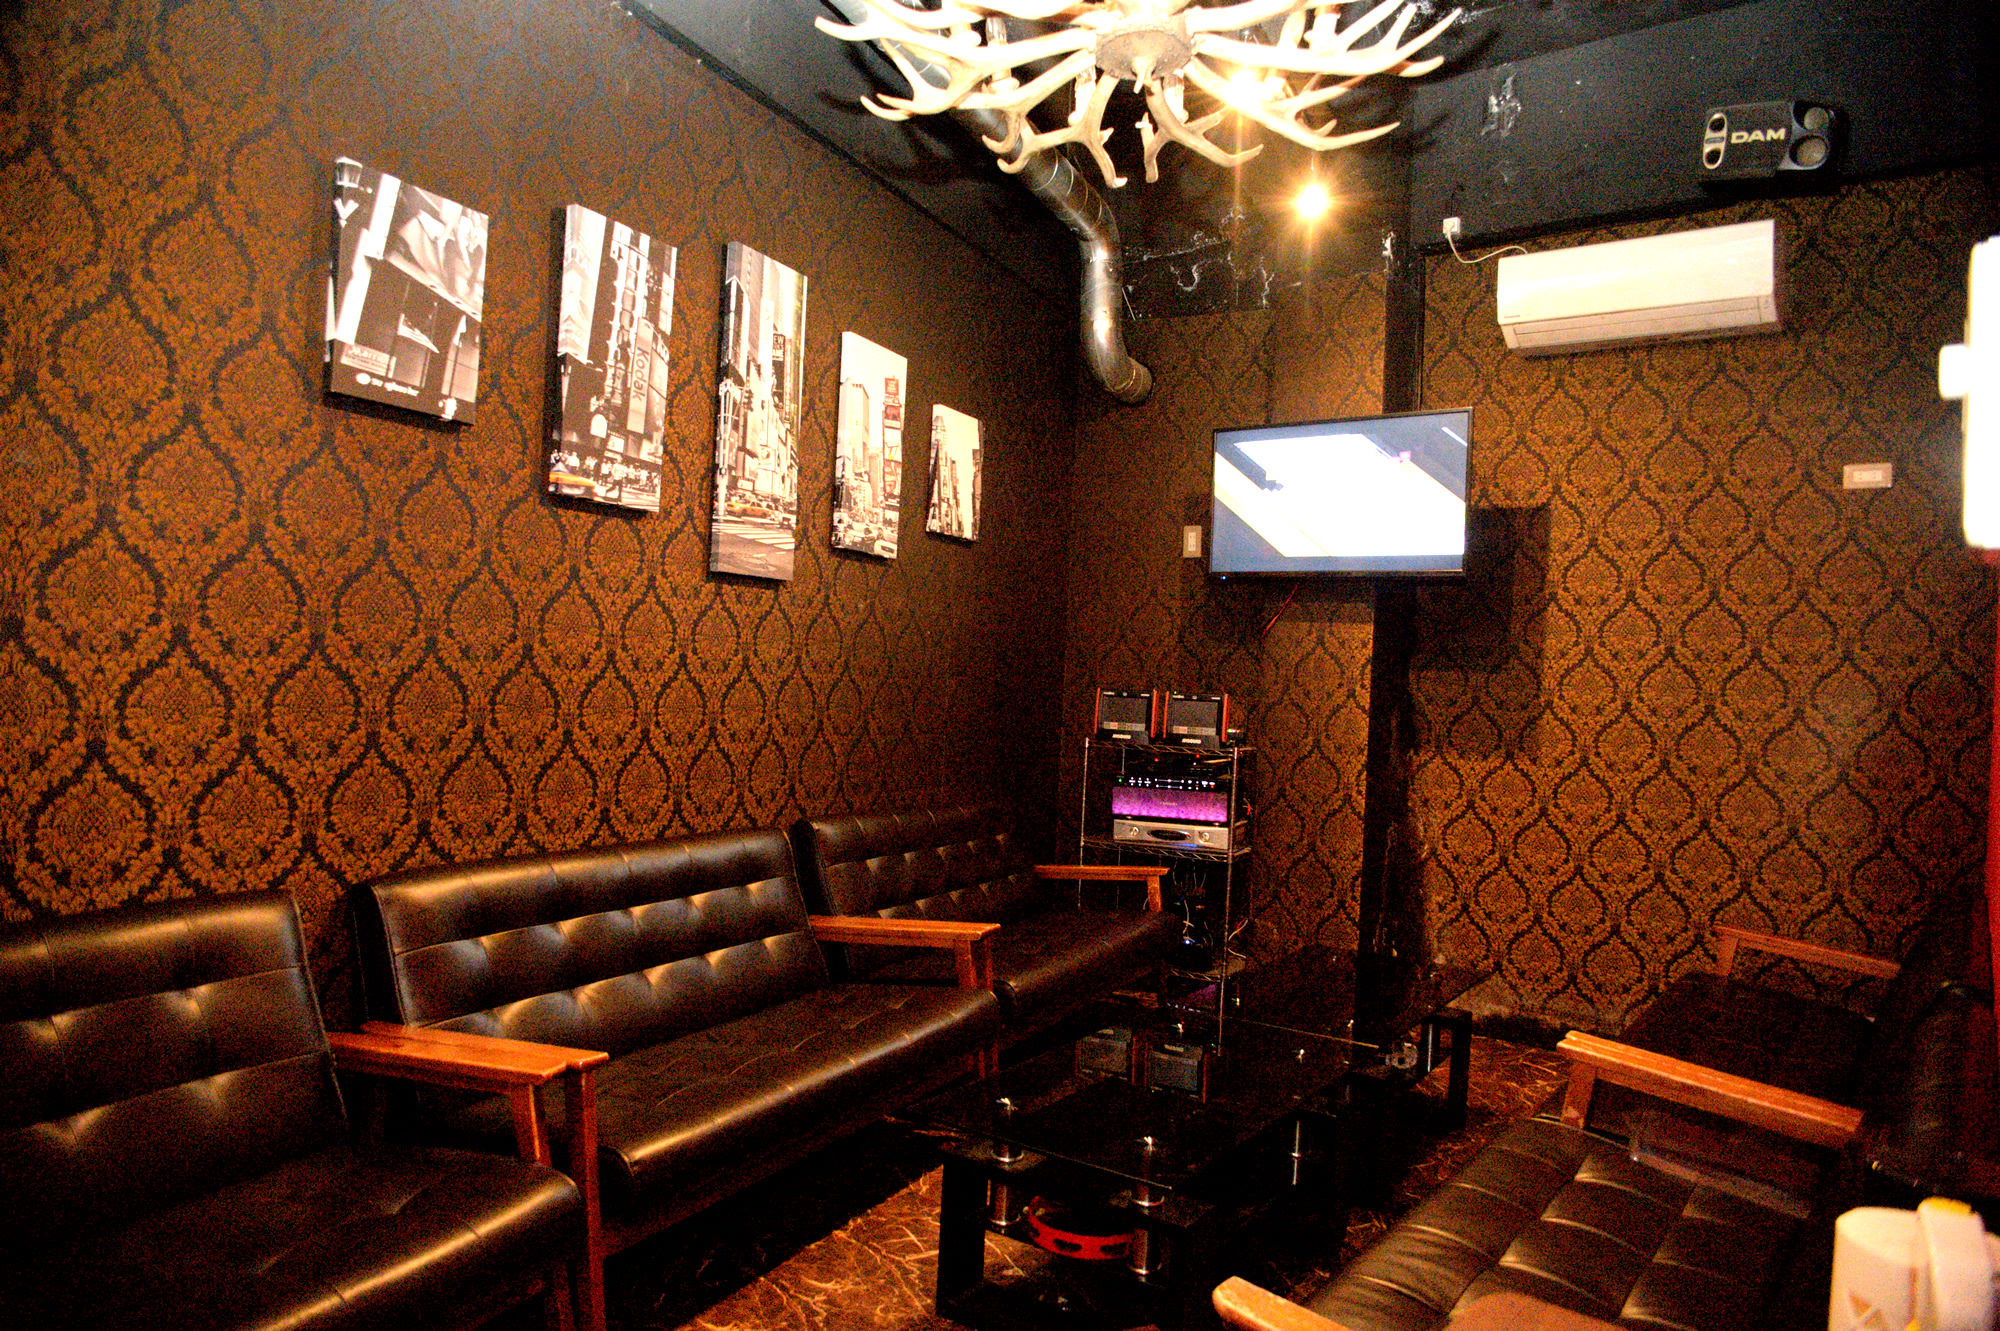 With a private karaoke room. Secret date or group using is possible!